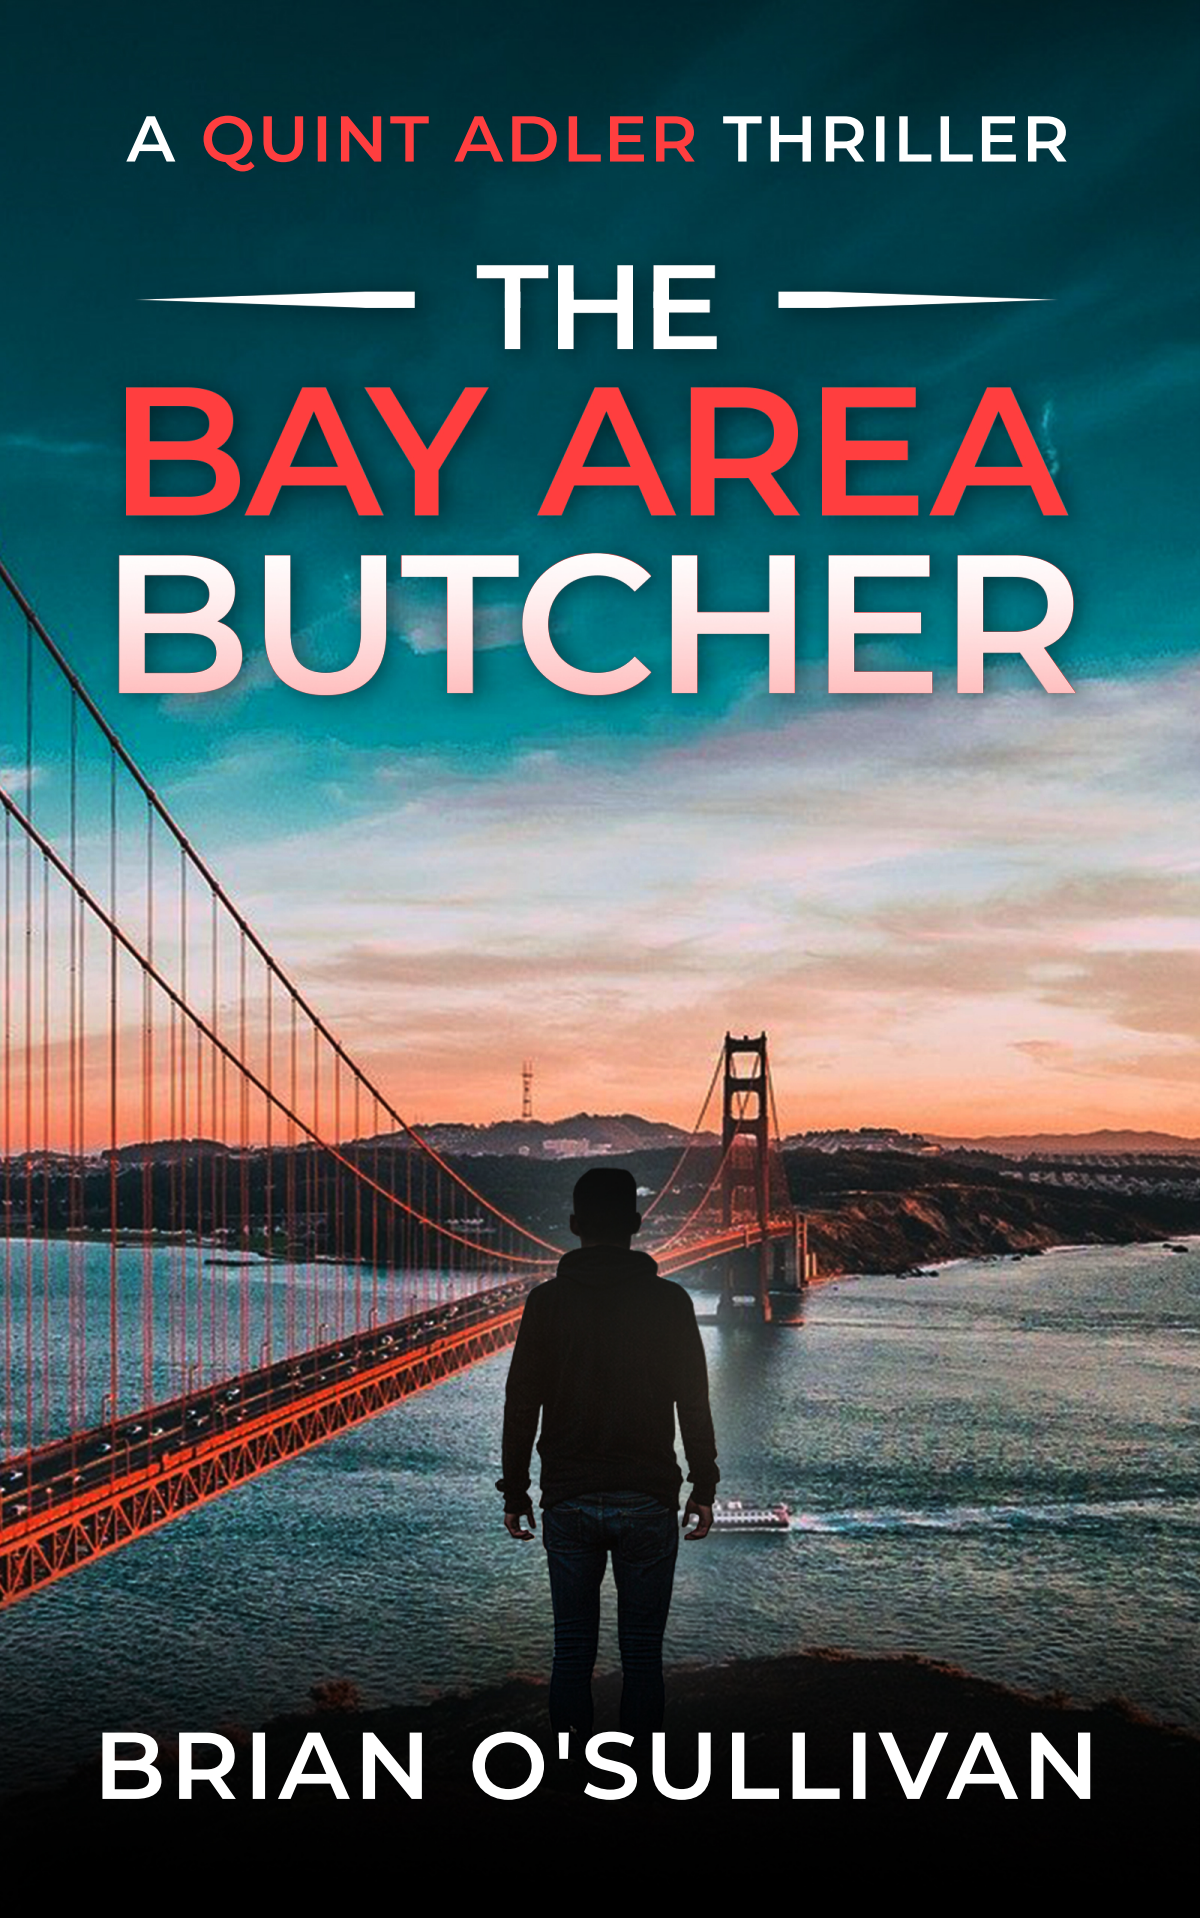 The Bay Area Butcher Ebook cover based on contest win